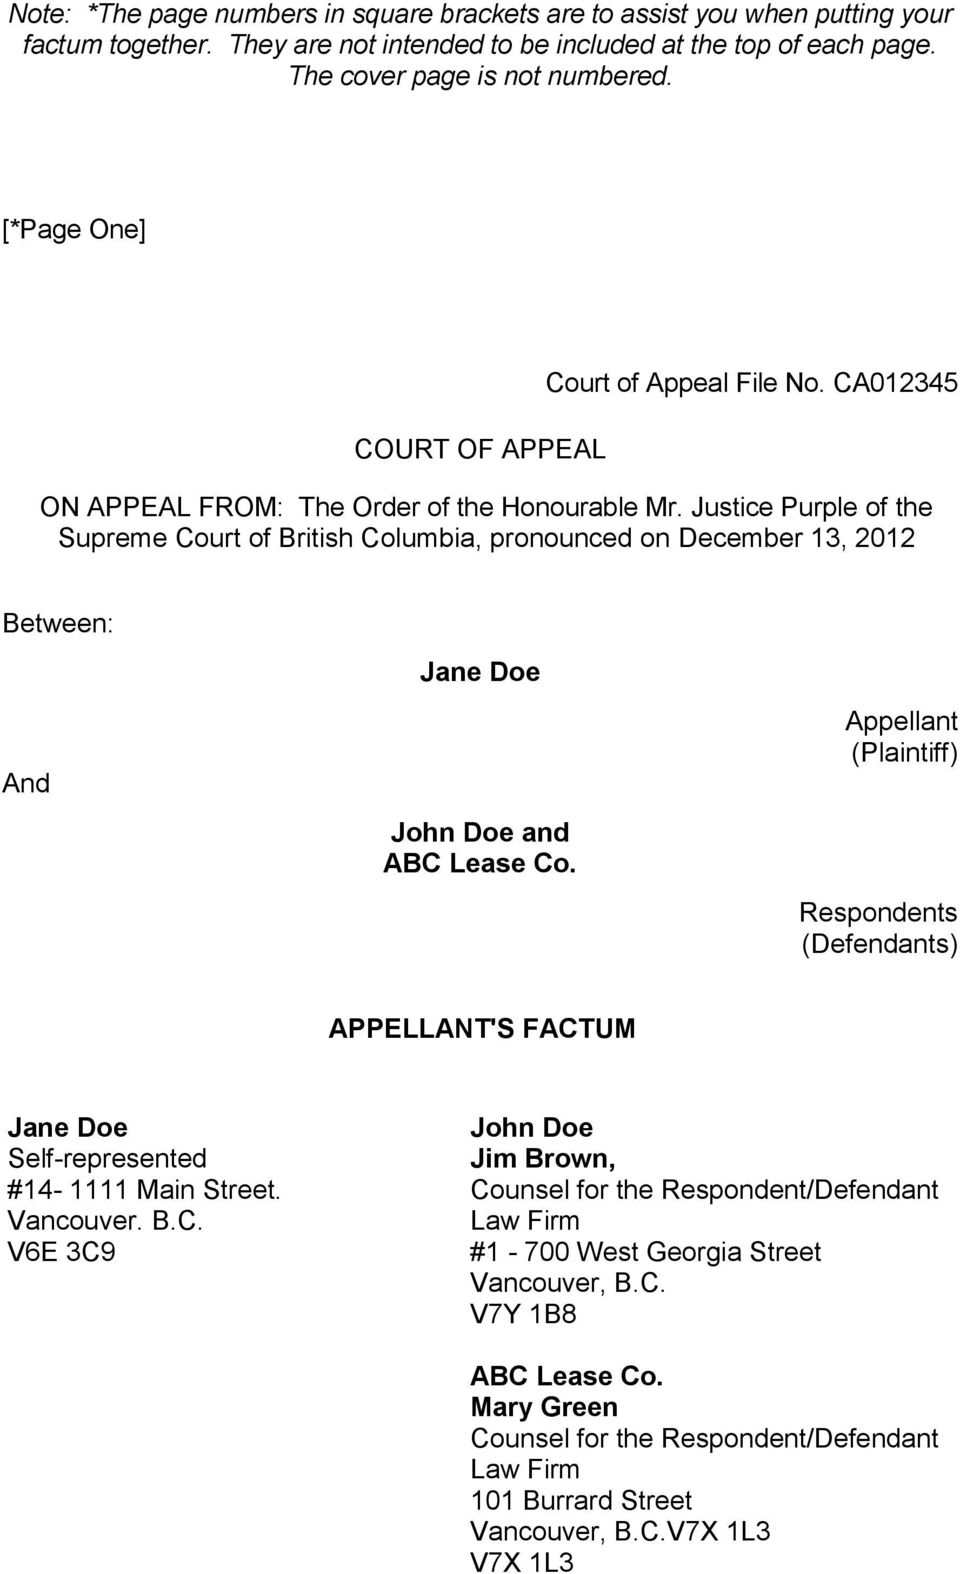 Justice Purple of the Supreme Court of British Columbia, pronounced on December 13, 2012 Between: And Jane Doe John Doe and ABC Lease Co.